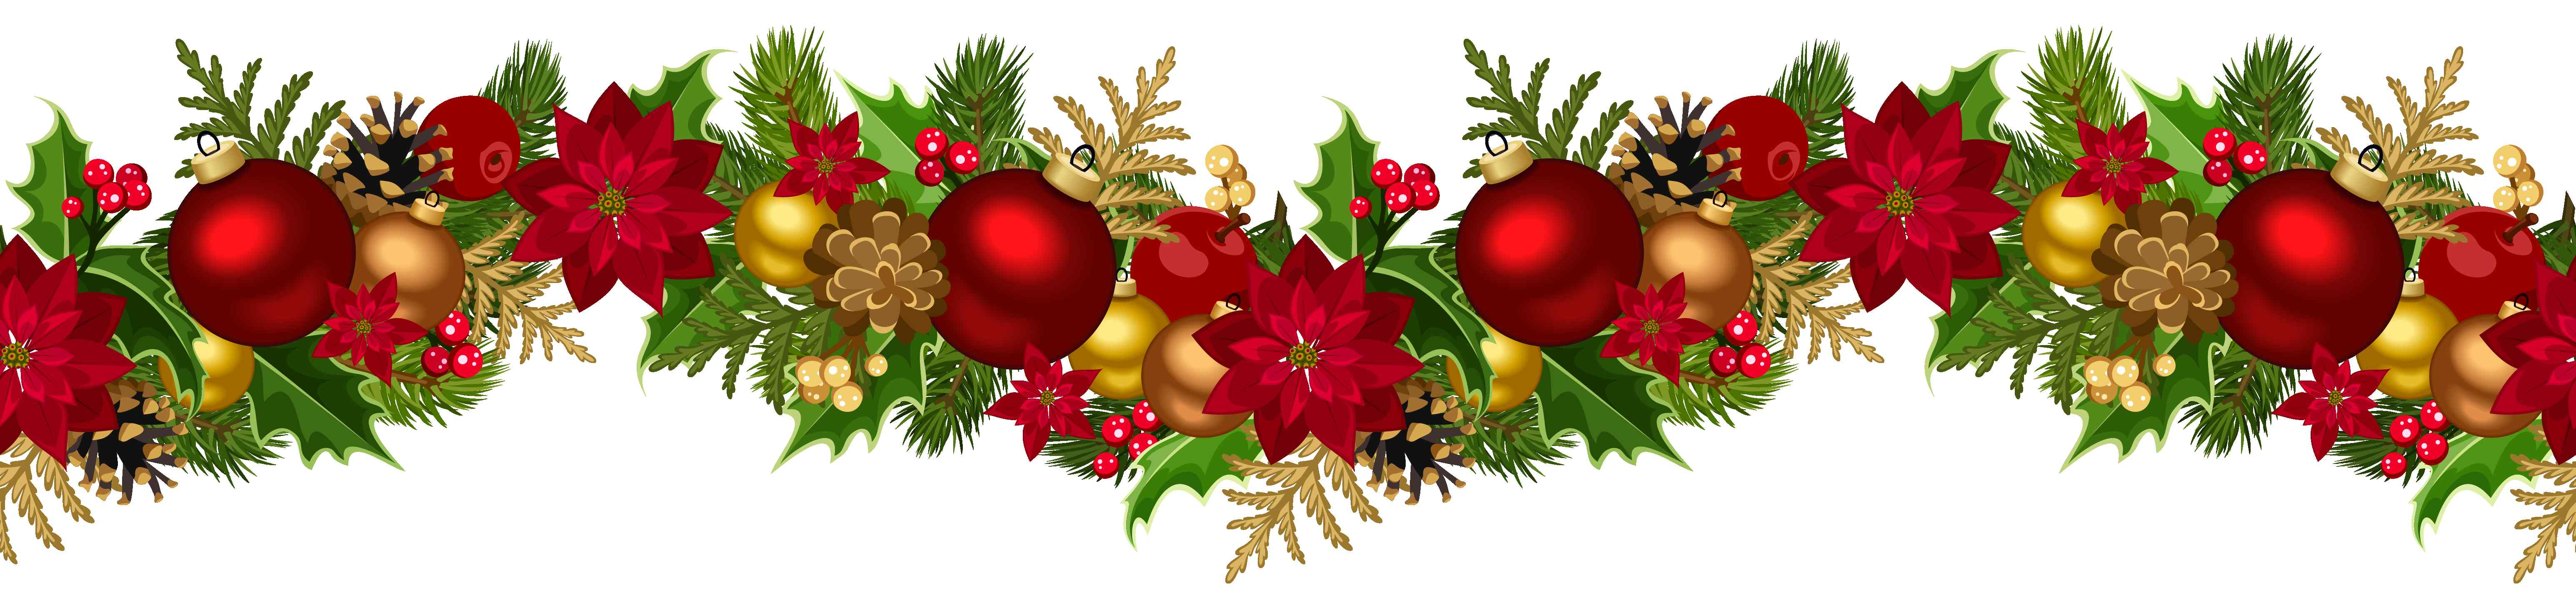 Christmas Garland Png 98 Images In Col 485046 Png